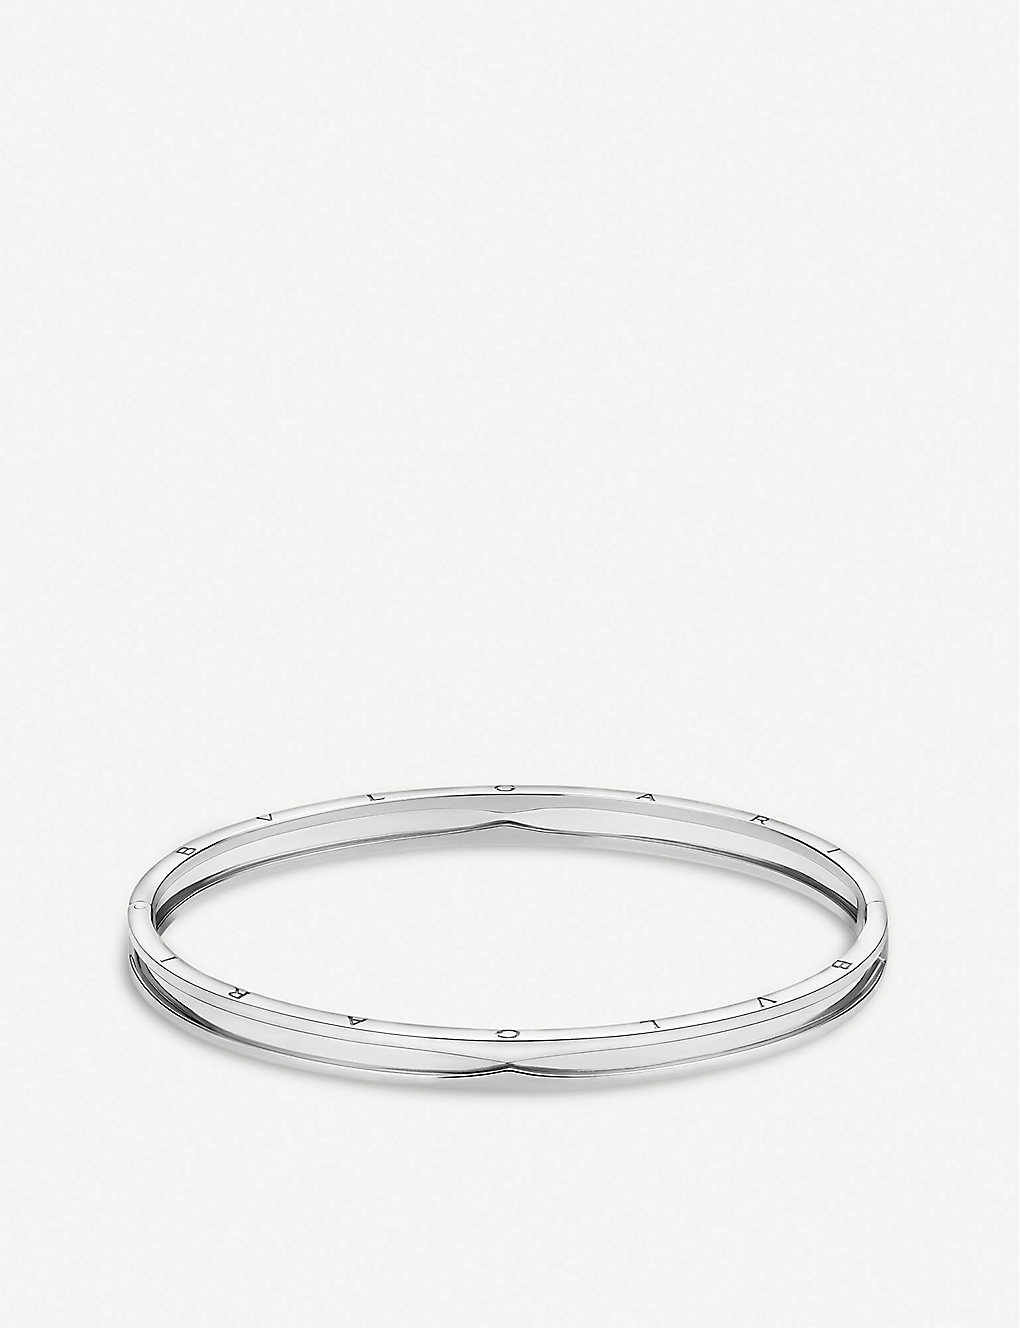 BVLGARI: B.zero1 18ct white-gold bangle bracelet